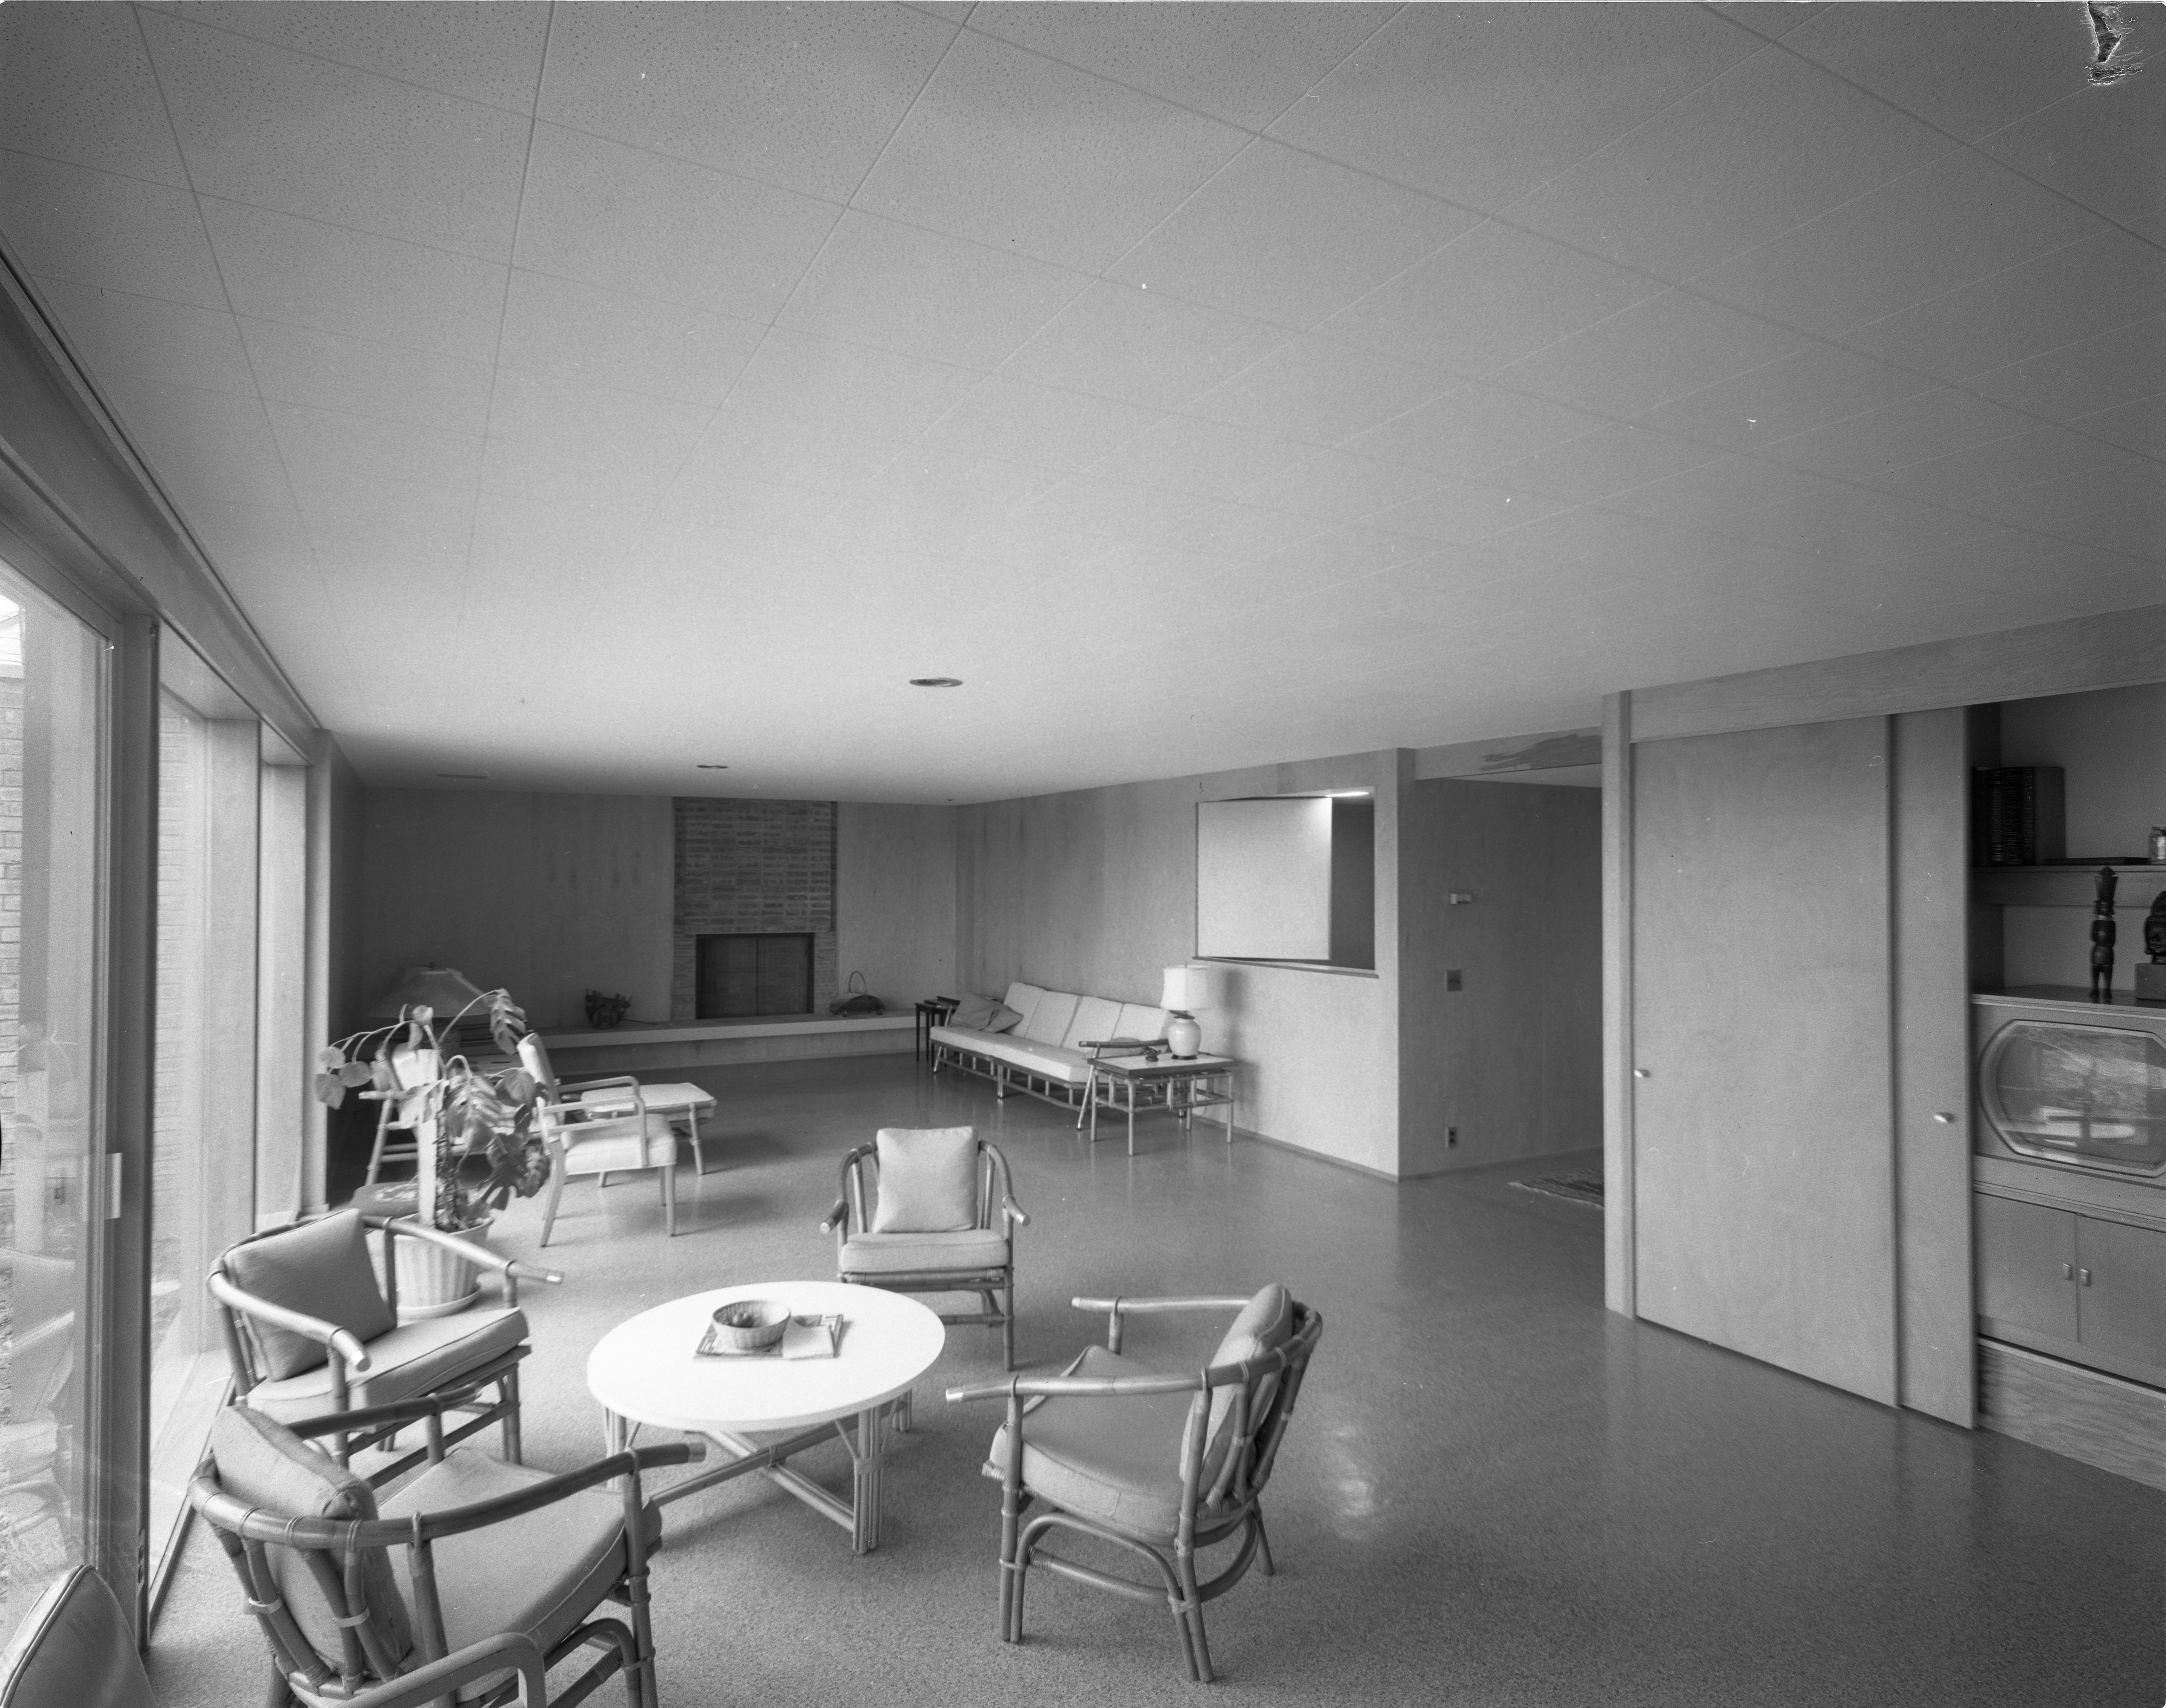 Recreation Room In Mid-Century Modern Dingman Home on Chestnut Drive, March 1960 image